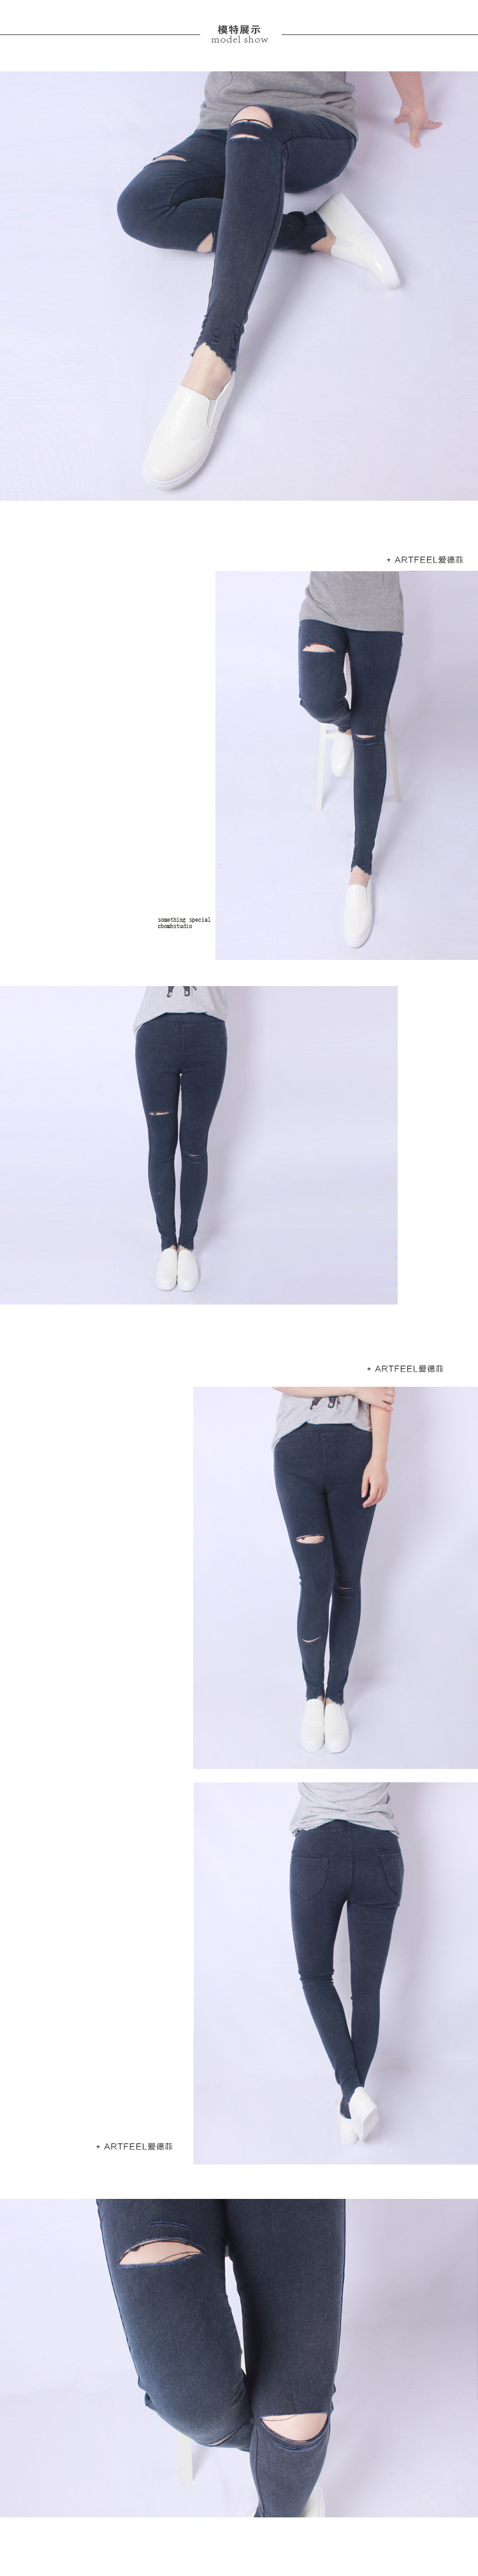 2016 Autumn New Women Jeans Ripped Holes Fashion Straight Famale Washed Denim Pants Cotton Trousers Large Size 4XL JA6024